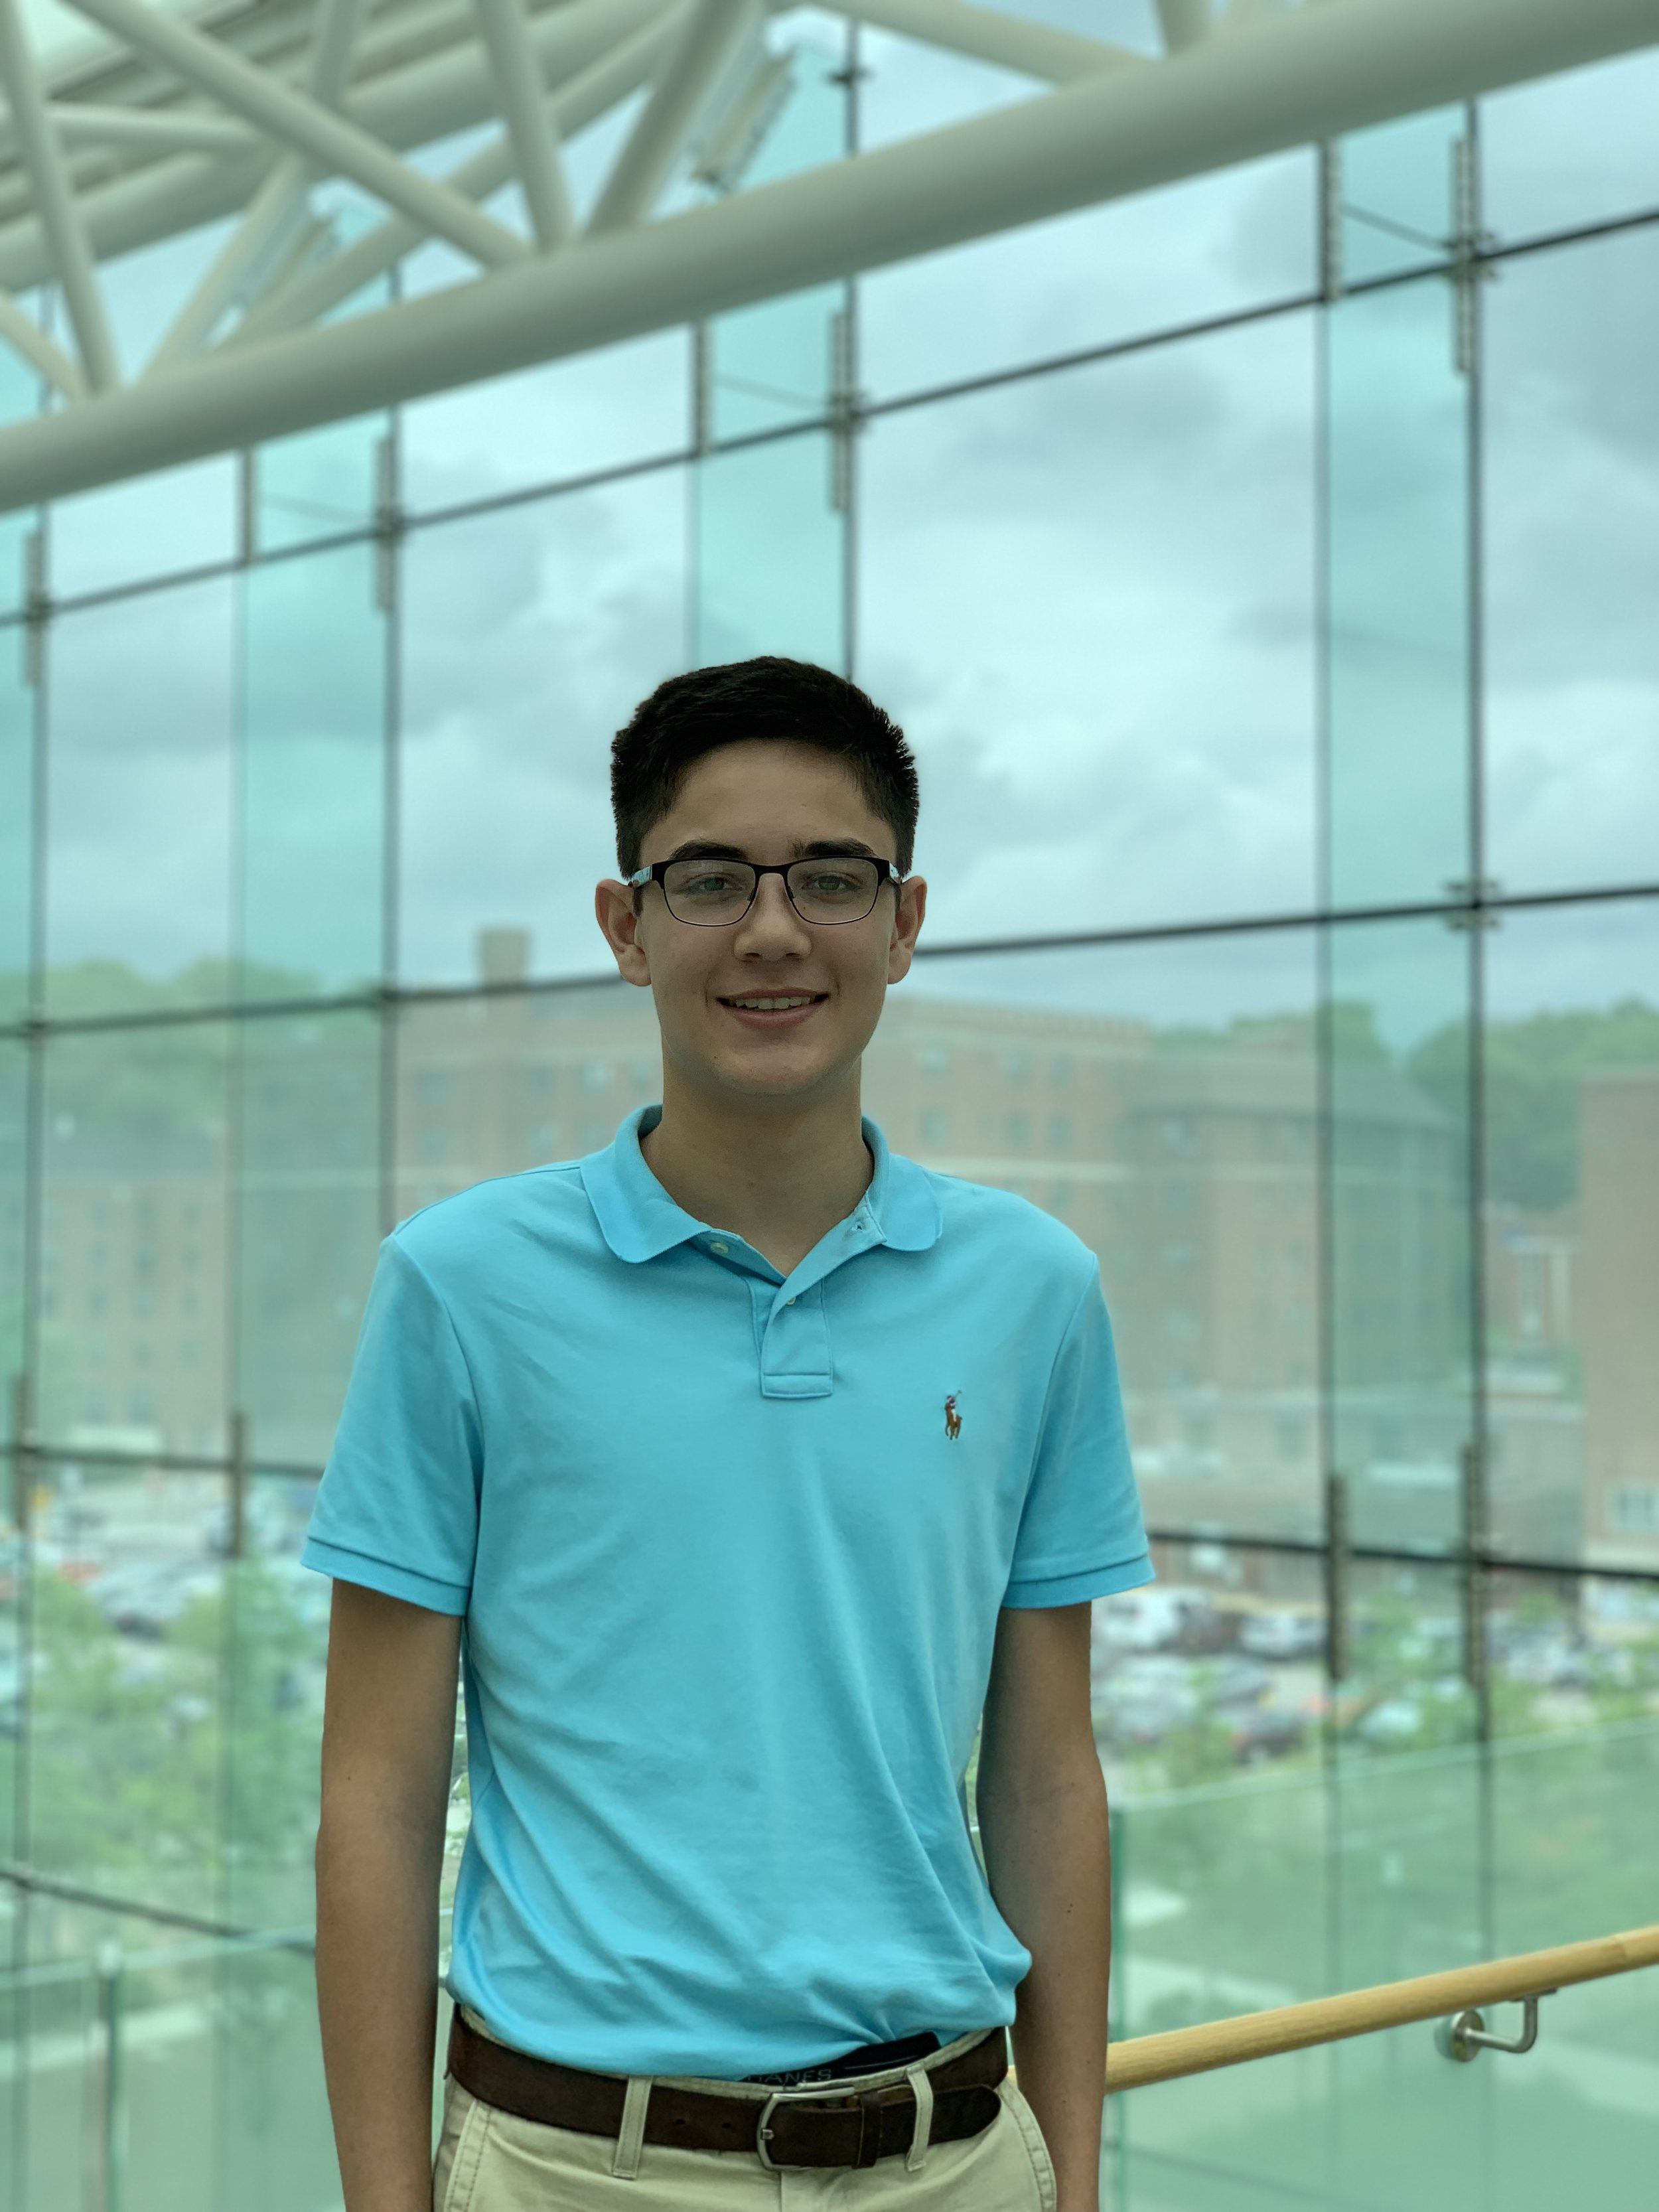 Samuel is a rising sophomore at Babson College, majoring in Global Business Management. Outside of the classroom, he is involved in the Investment Banking club and the MMA club. He enjoys basketball, travelling, and hanging out with friends. At GTE, Samuel looks forward to exploring potential career paths and learning more about the search model.